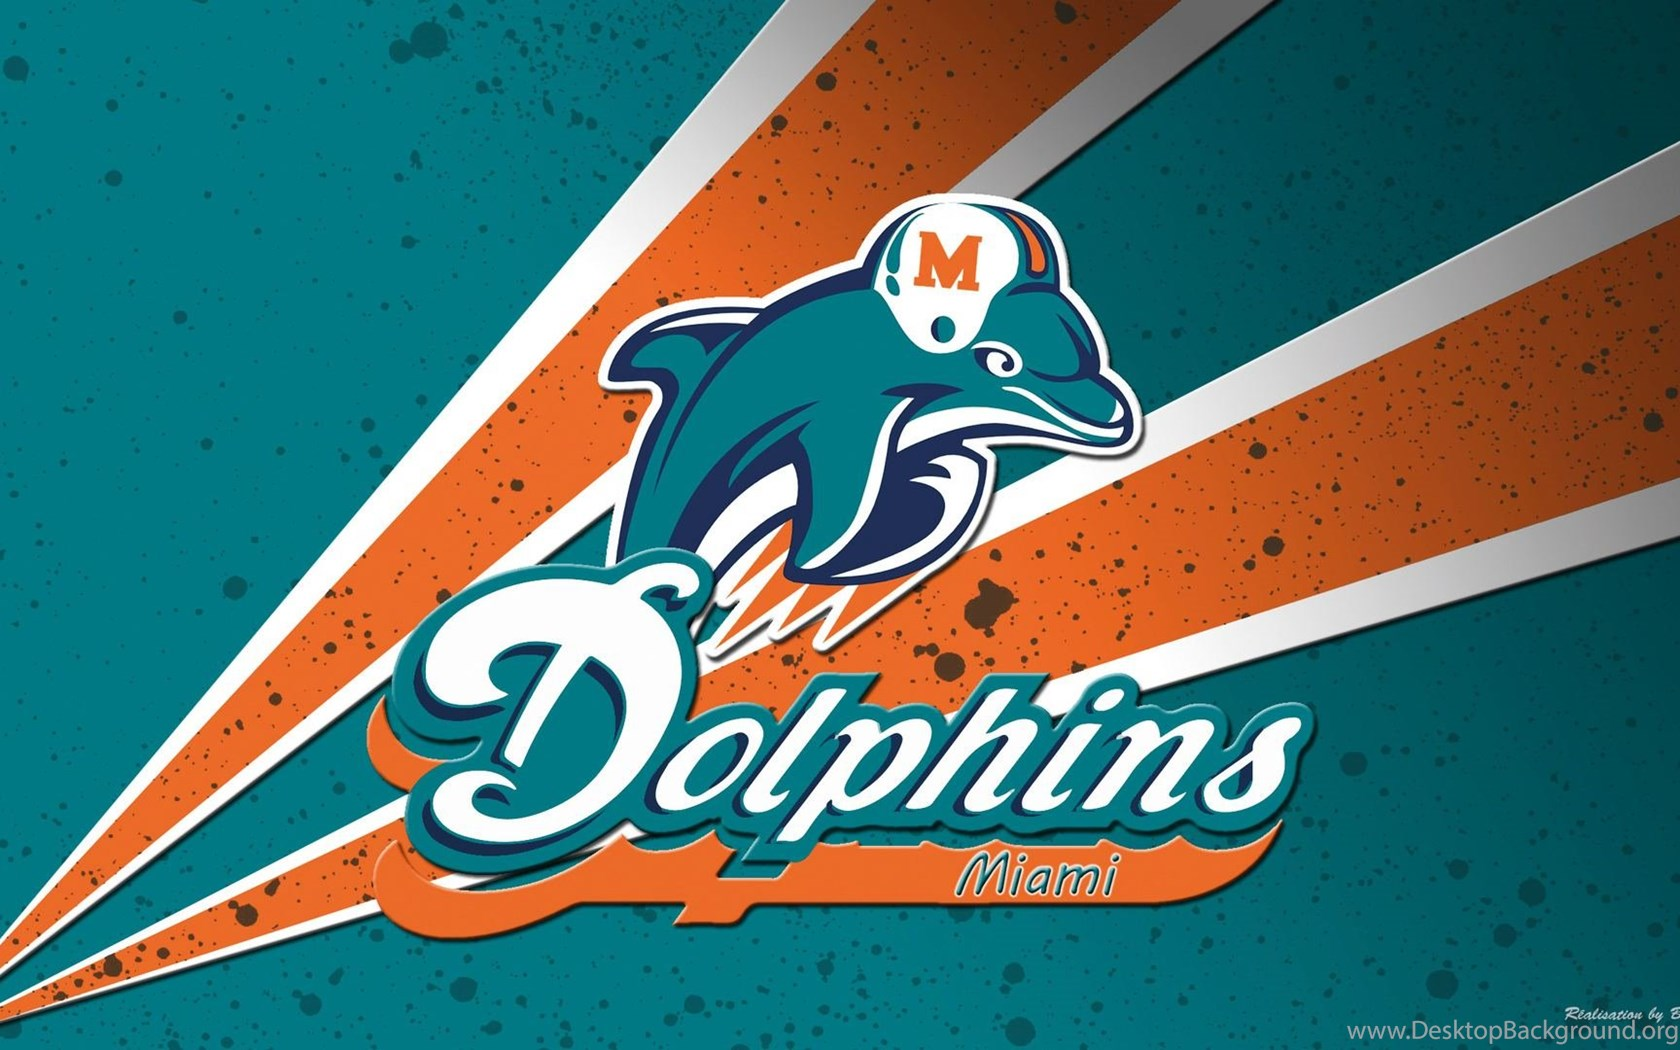 Miami Dolphins Wallpapers Hd Free Download Desktop Background